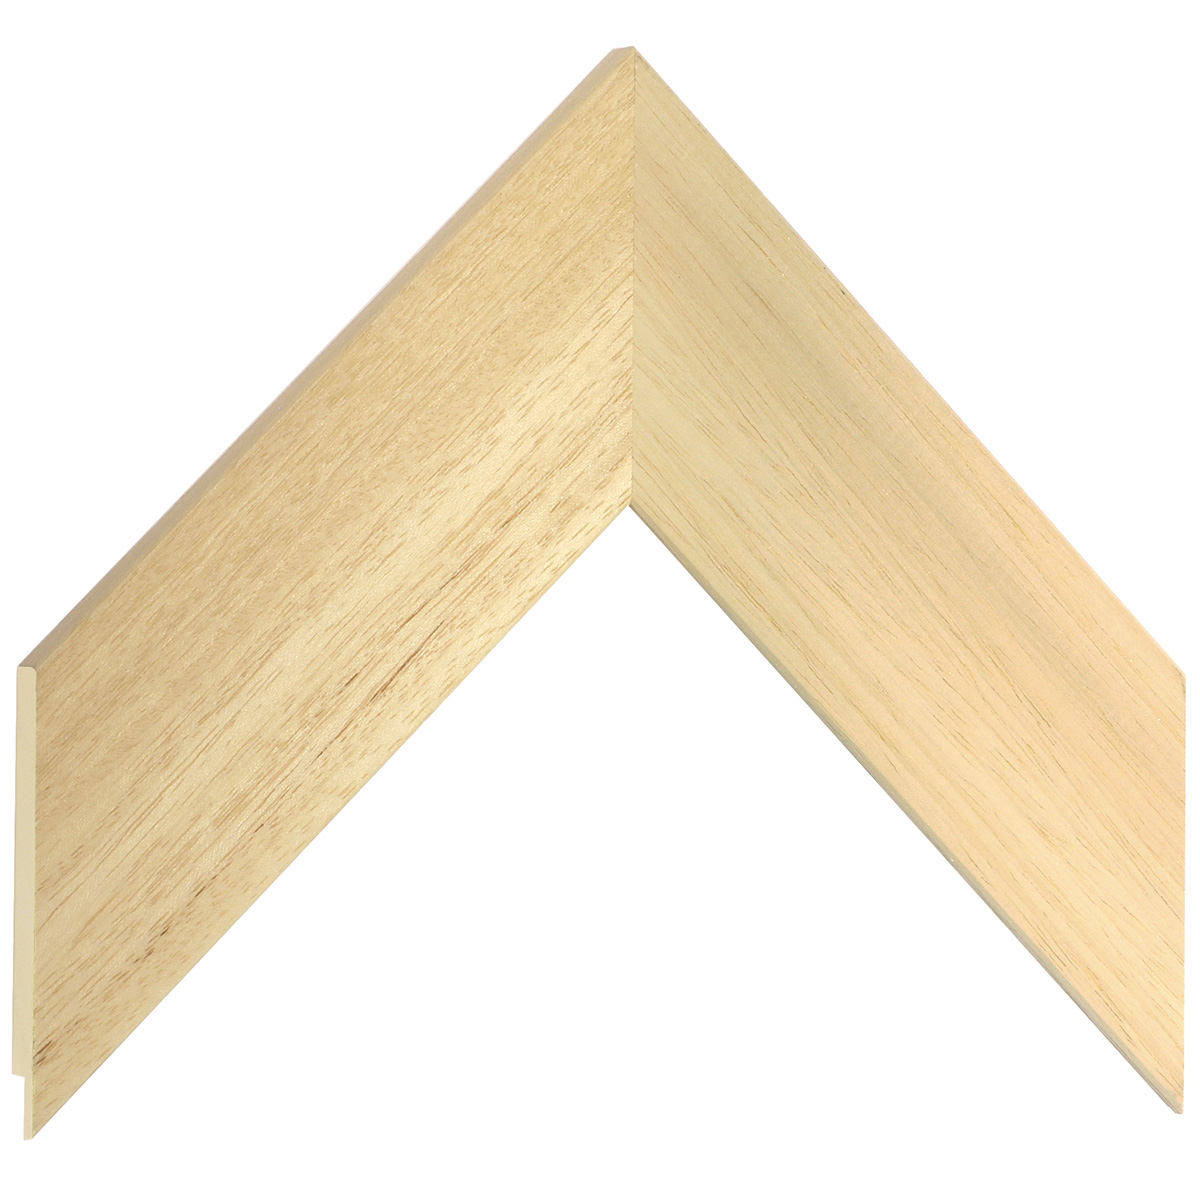 Moulding ayous, width 55mm, height 10mm, bare timber